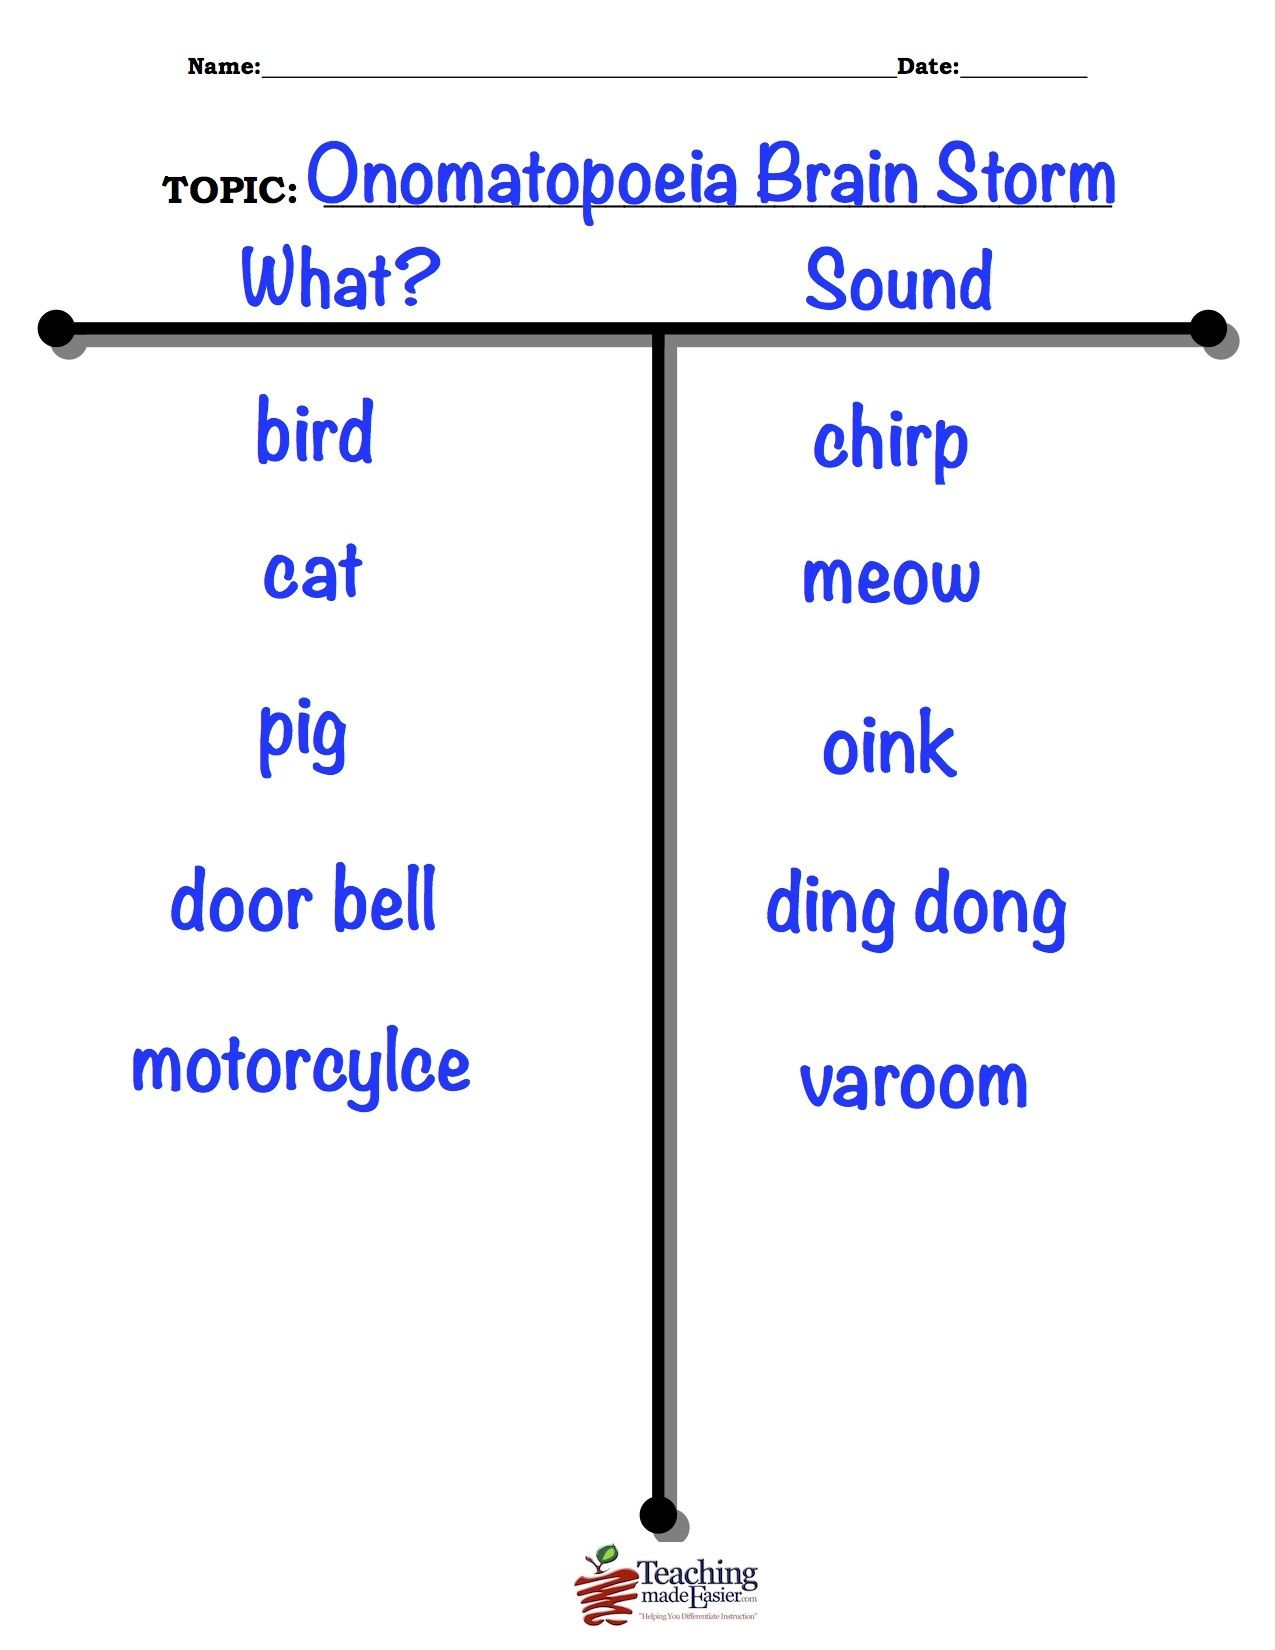 Onomatopoeic words - how to distinguish and what parts of speech to include